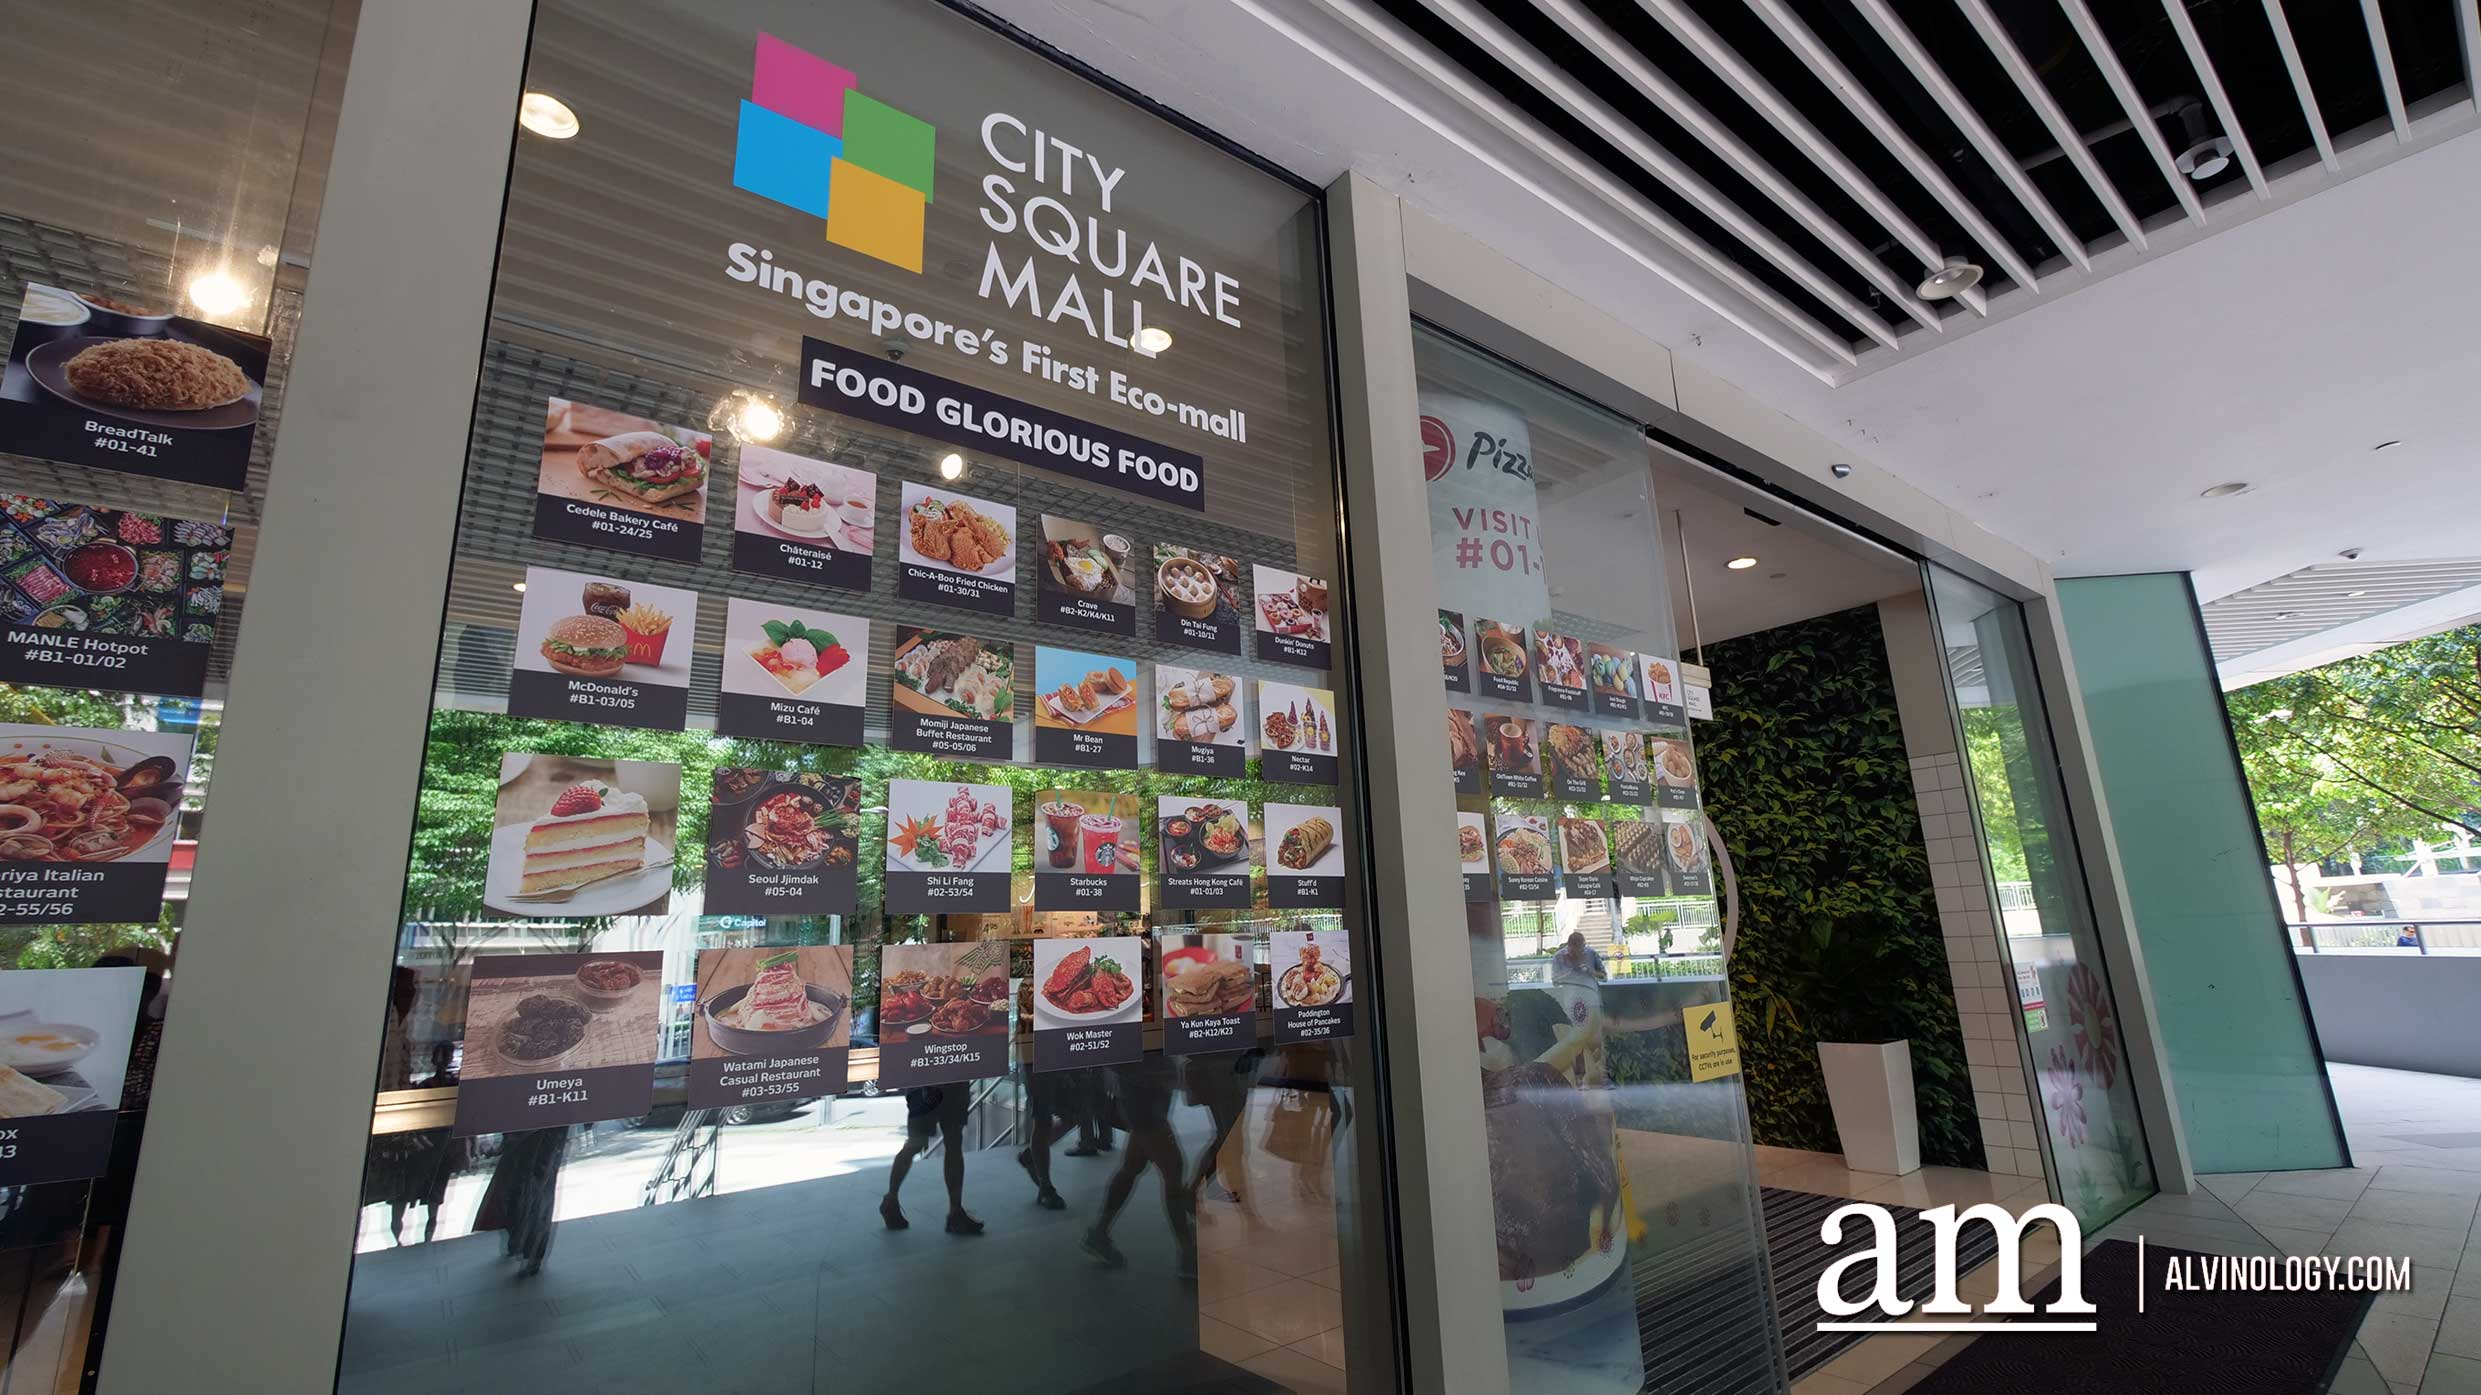 [PROMO CODE INSIDE] Celebrate Mother's Day at City Square Mall - Alvinology